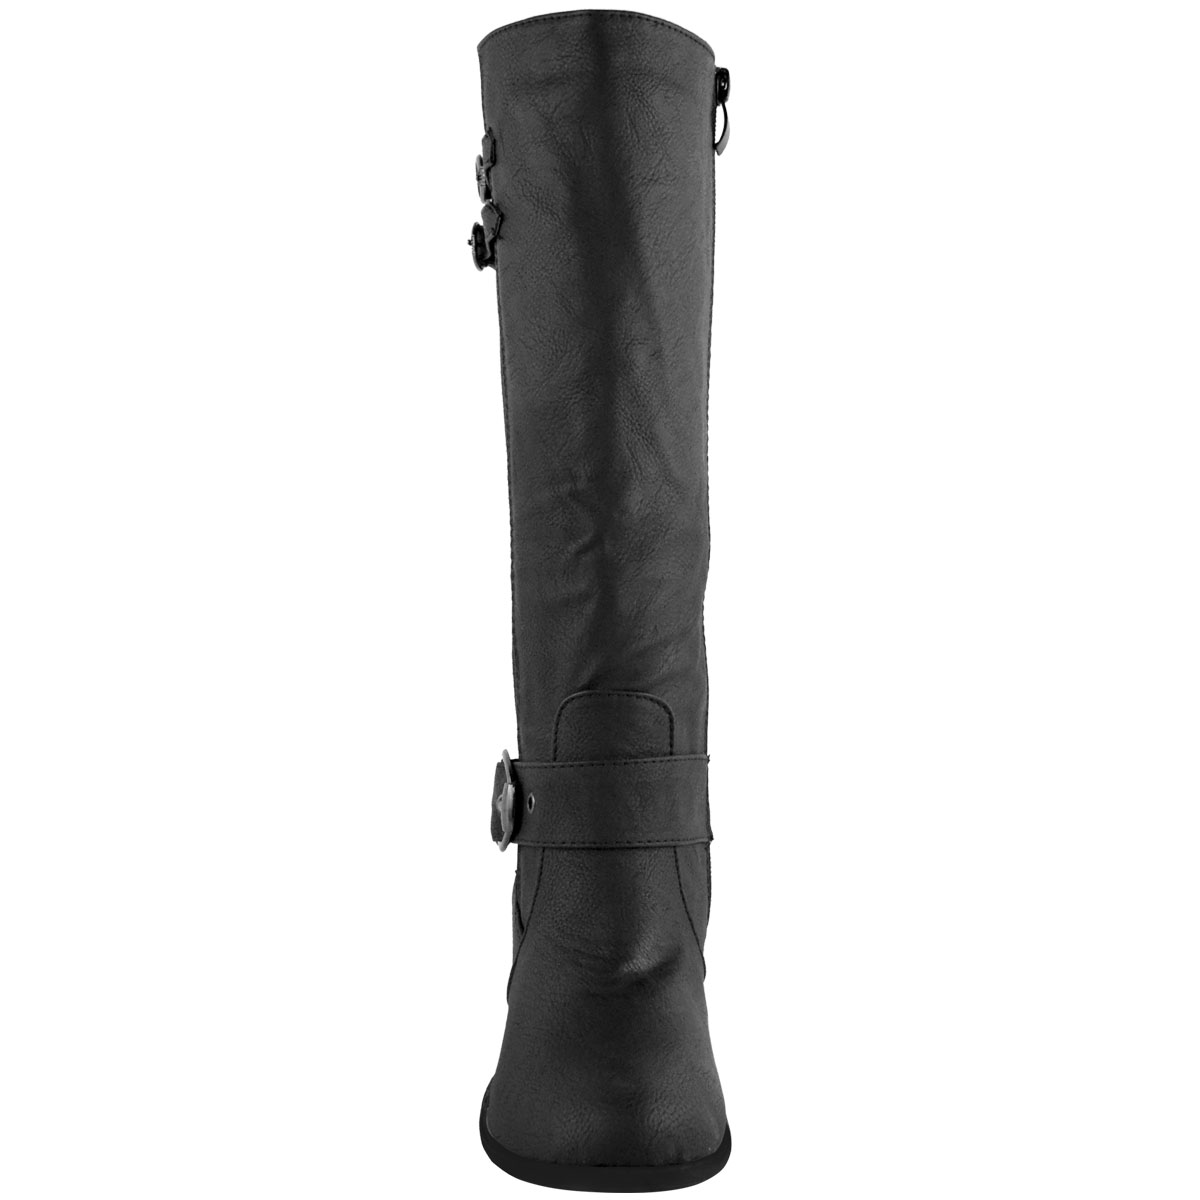 Womens-Ladies-Knee-Calf-High-Boots-Block-Heels-Stretchy-Thigh-Shoes-Grip-Size thumbnail 15